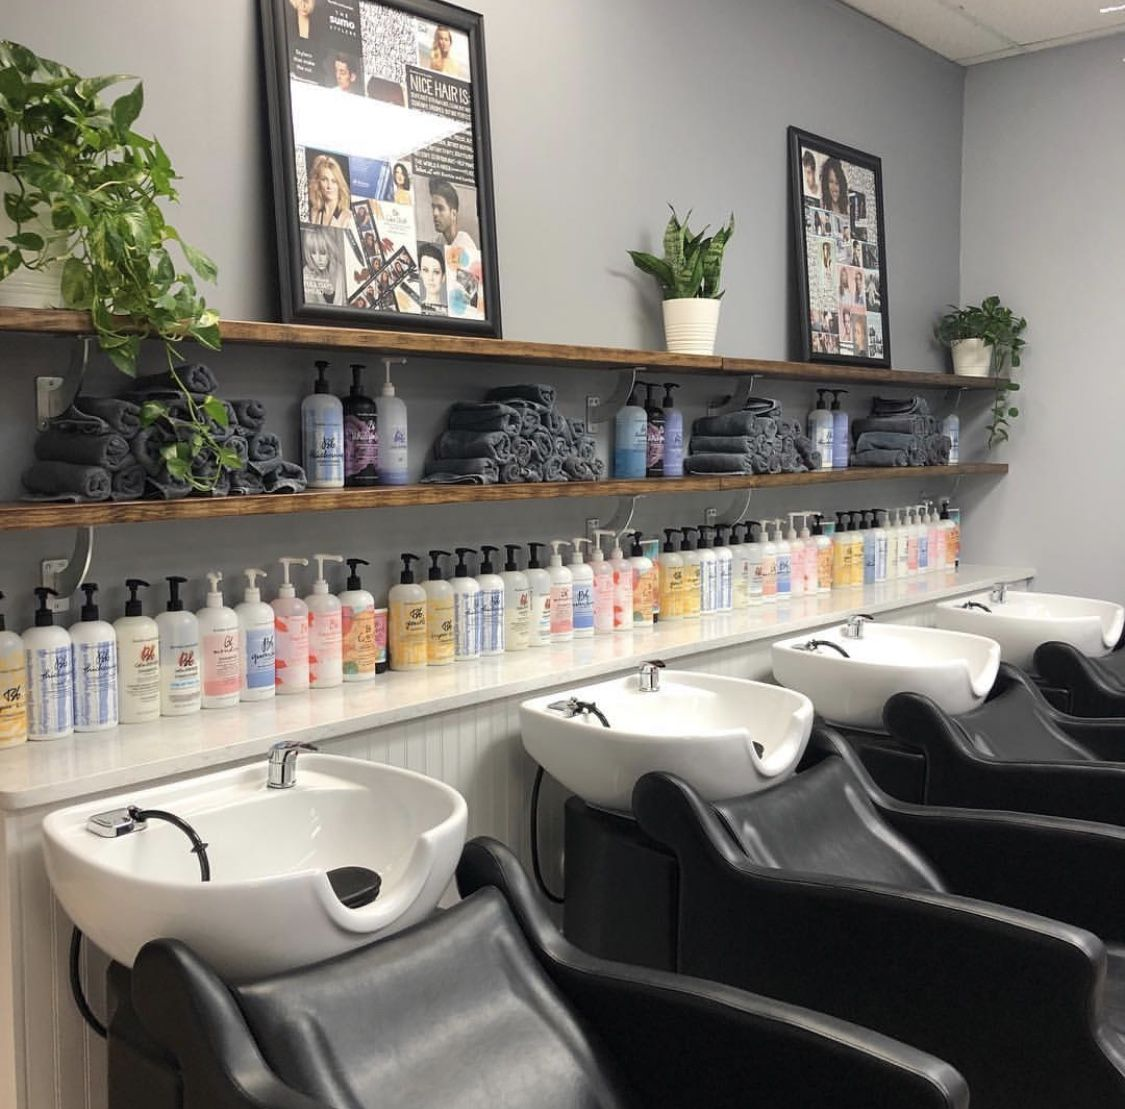 Recline Relax And Restore On The Avant Backwash Systems At West Coast Hair Design In Jacksonvill With Images Salon Suites Decor Hair Salon Interior Salon Interior Design